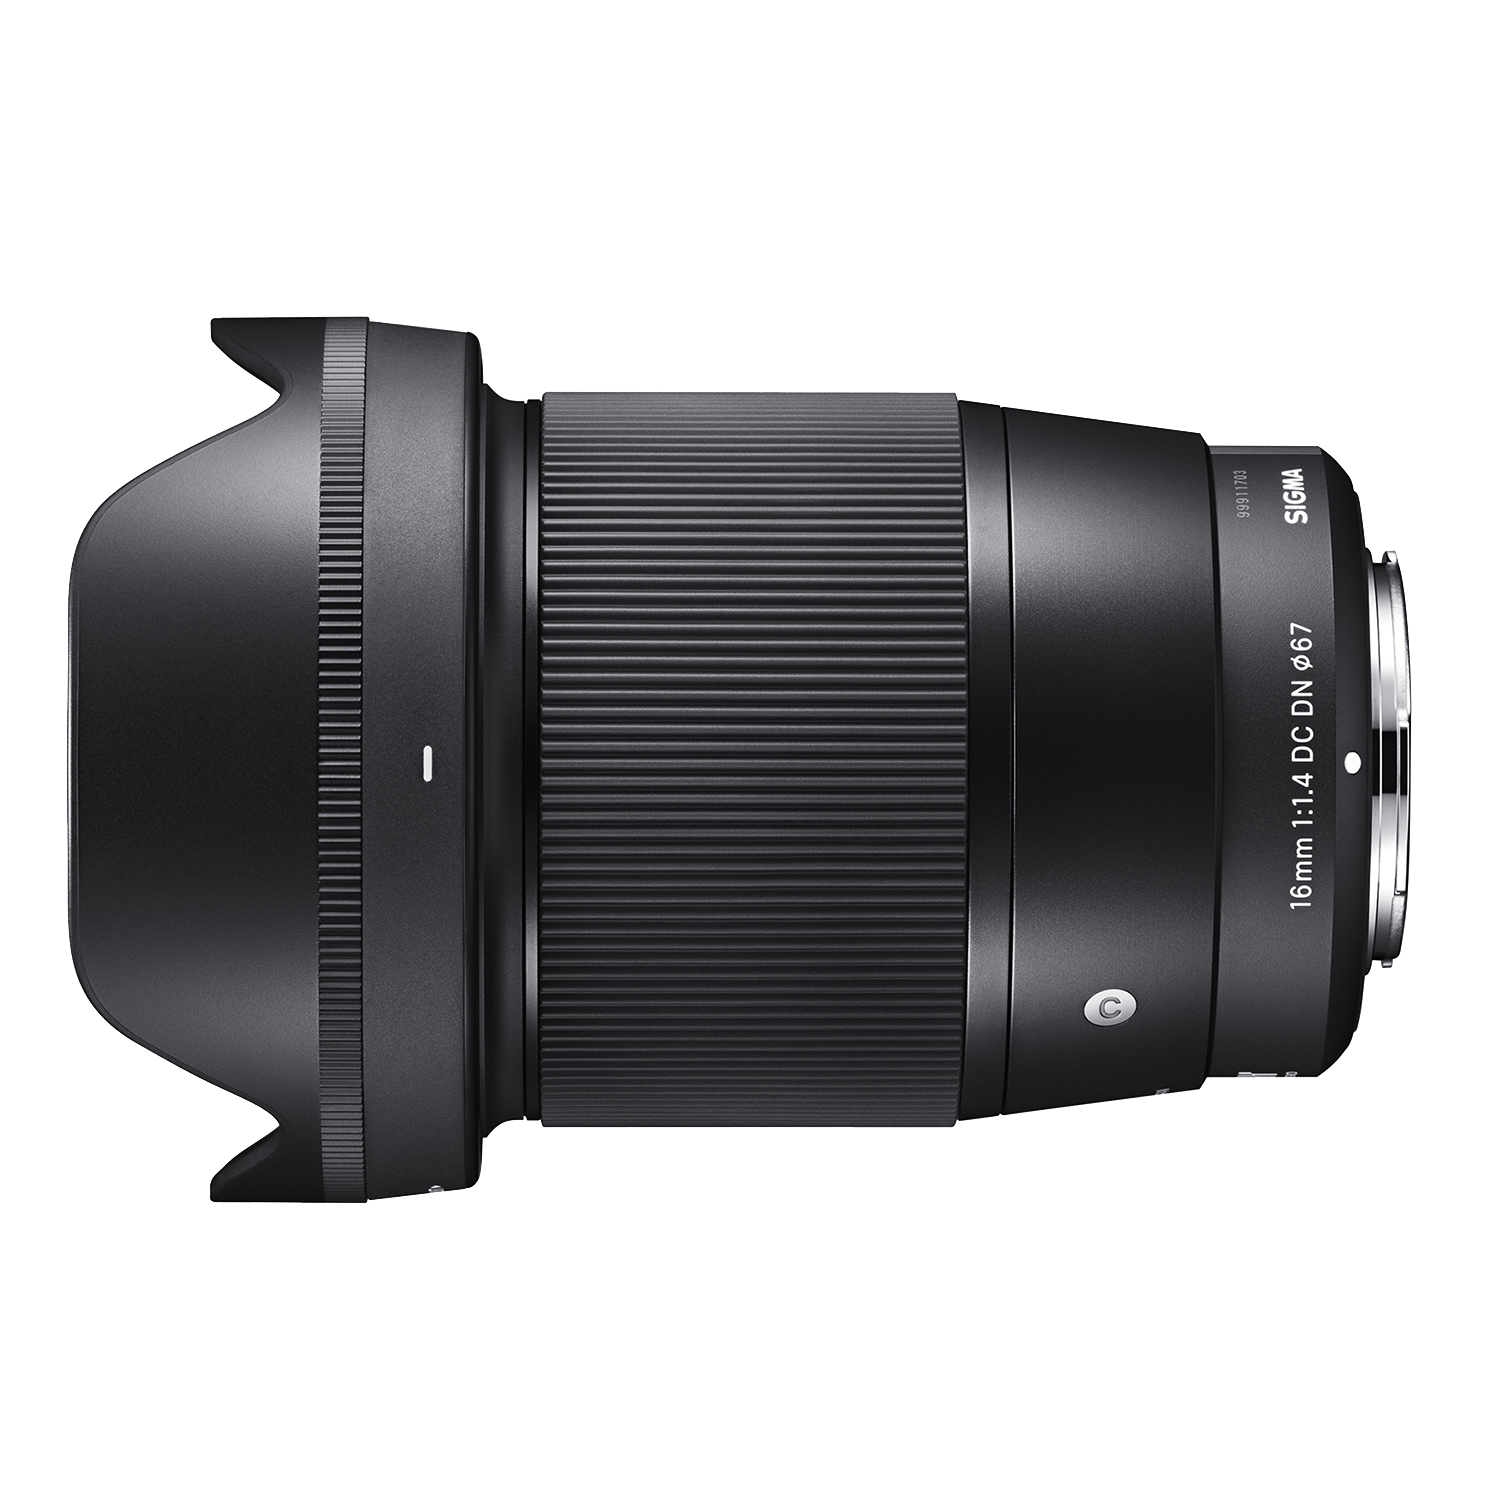 Sigma S16mm F1.4 DC DN Micro mm FT mm FSony Mount